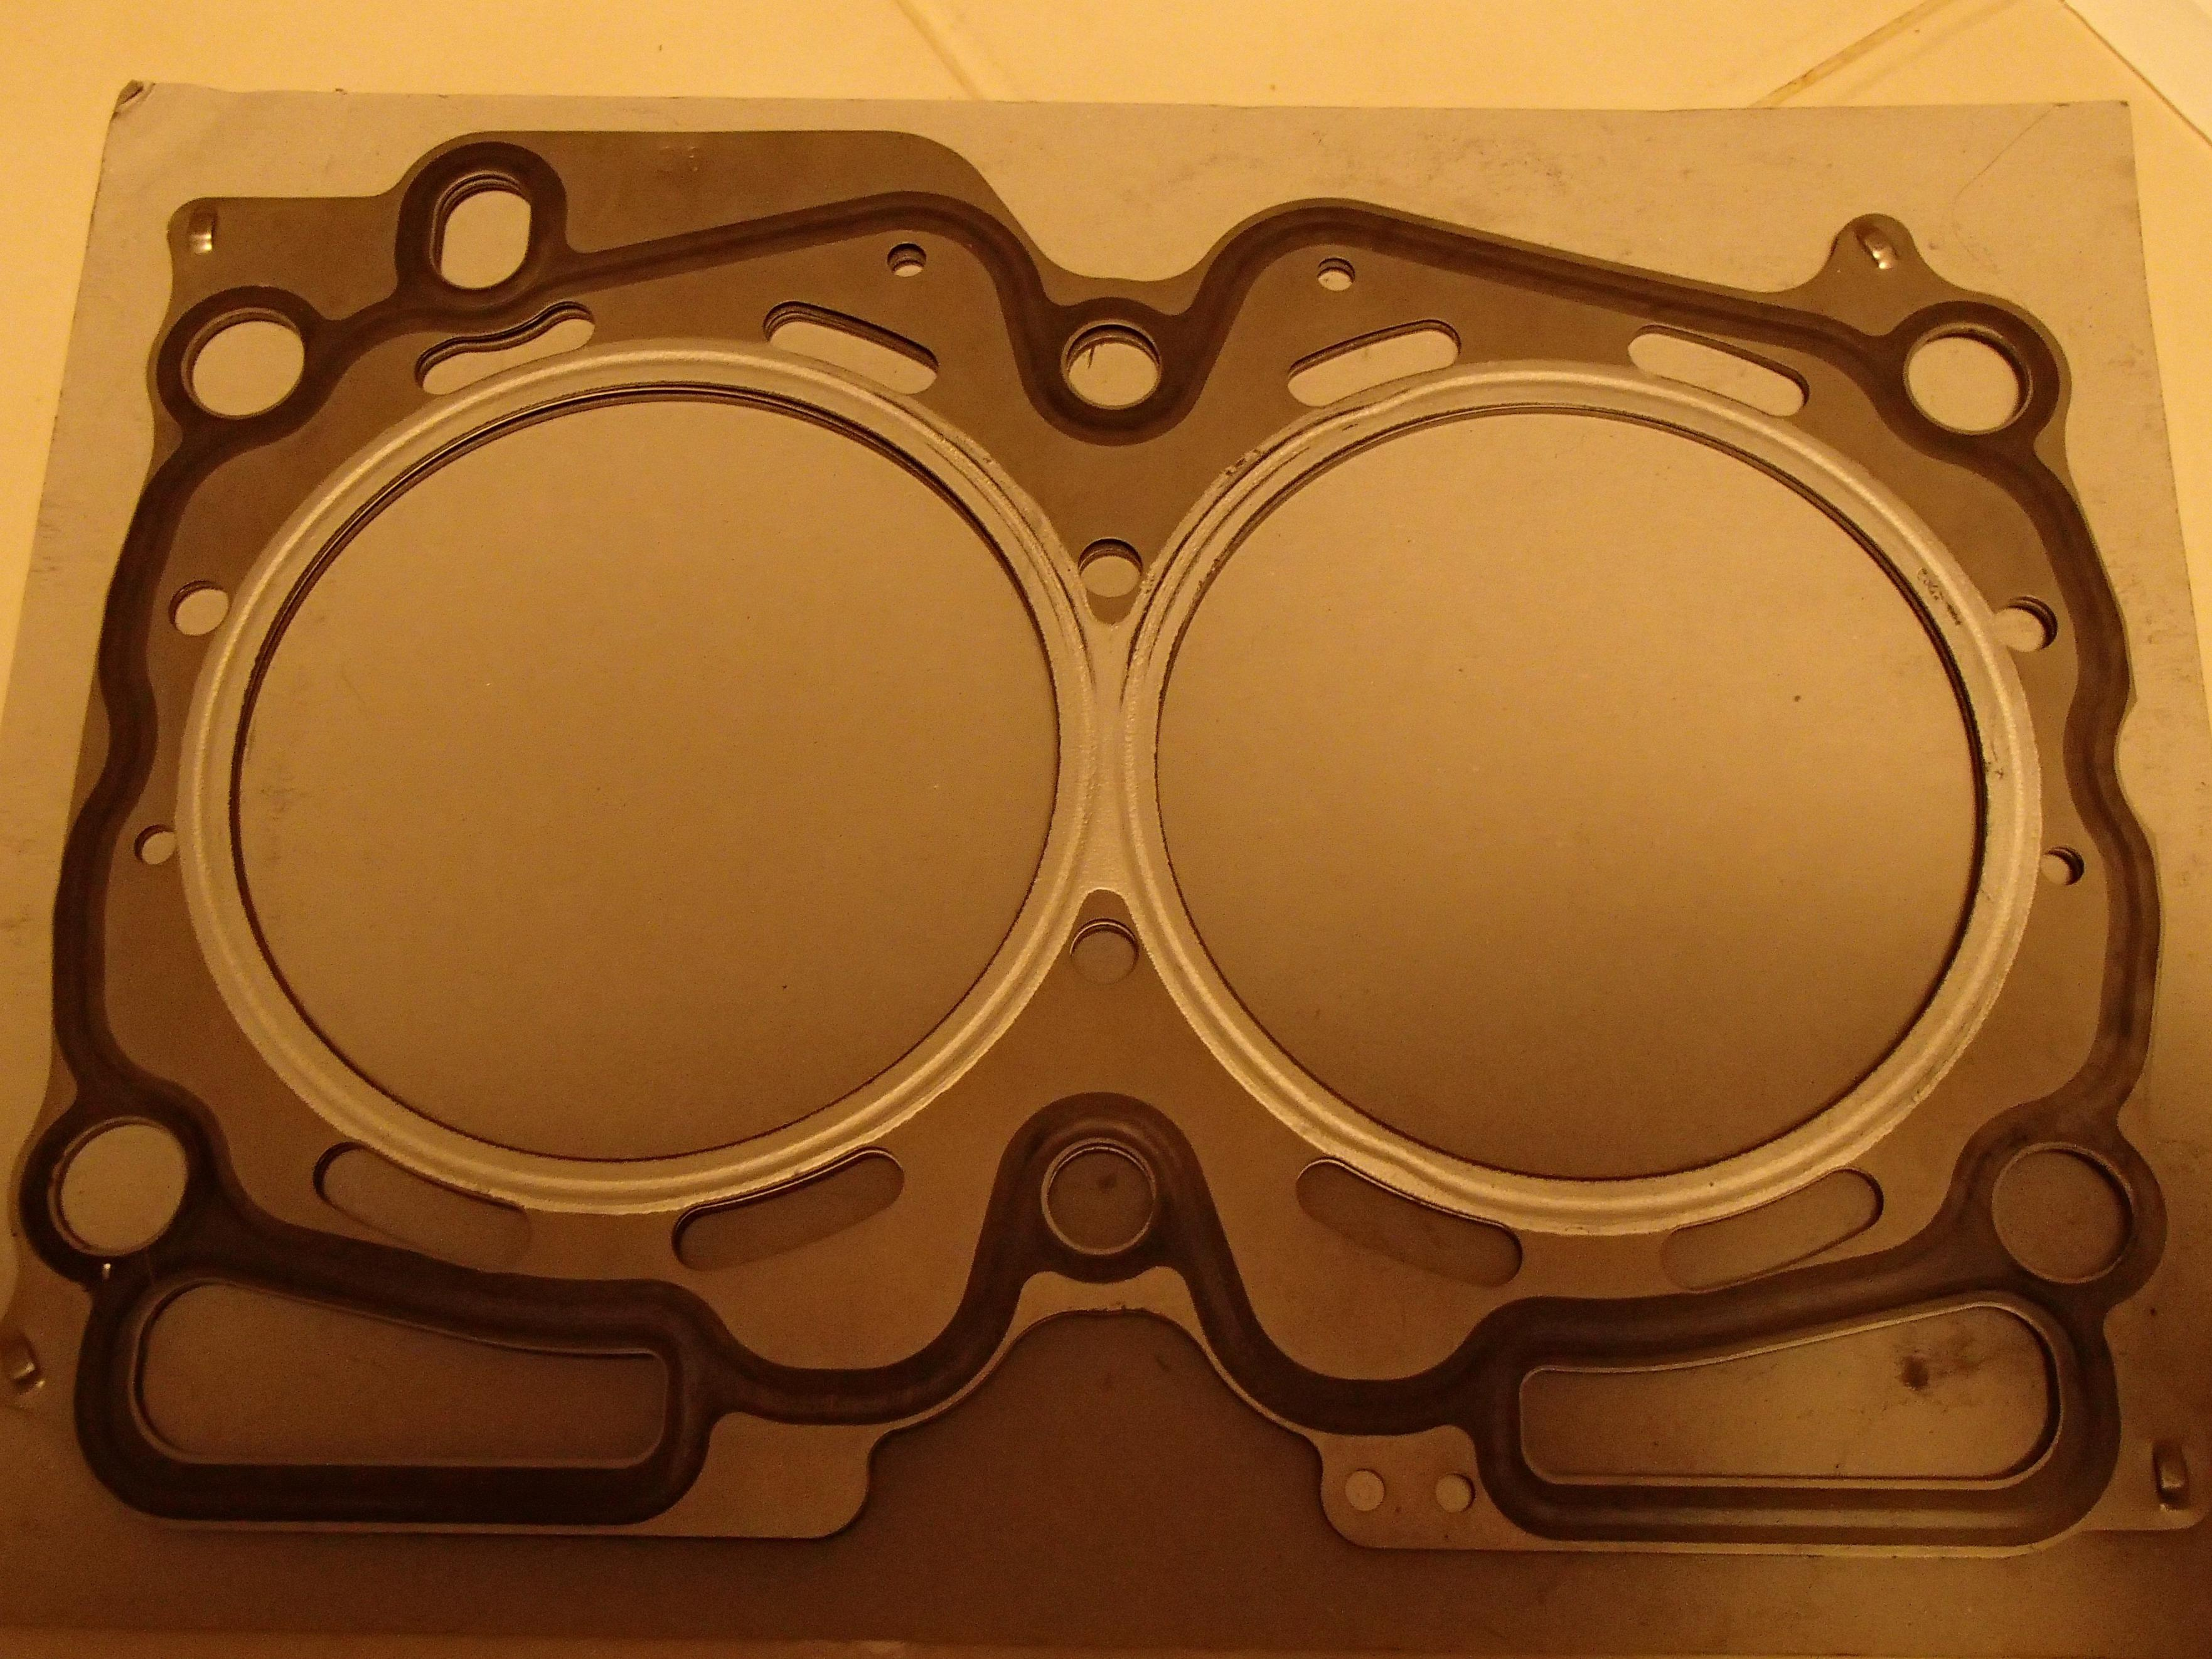 98 Subaru Ej25 Dohc Head Gasket Question Outback 1998 Click Image For Larger Version Name Pb031307 Views 175 Size 10198